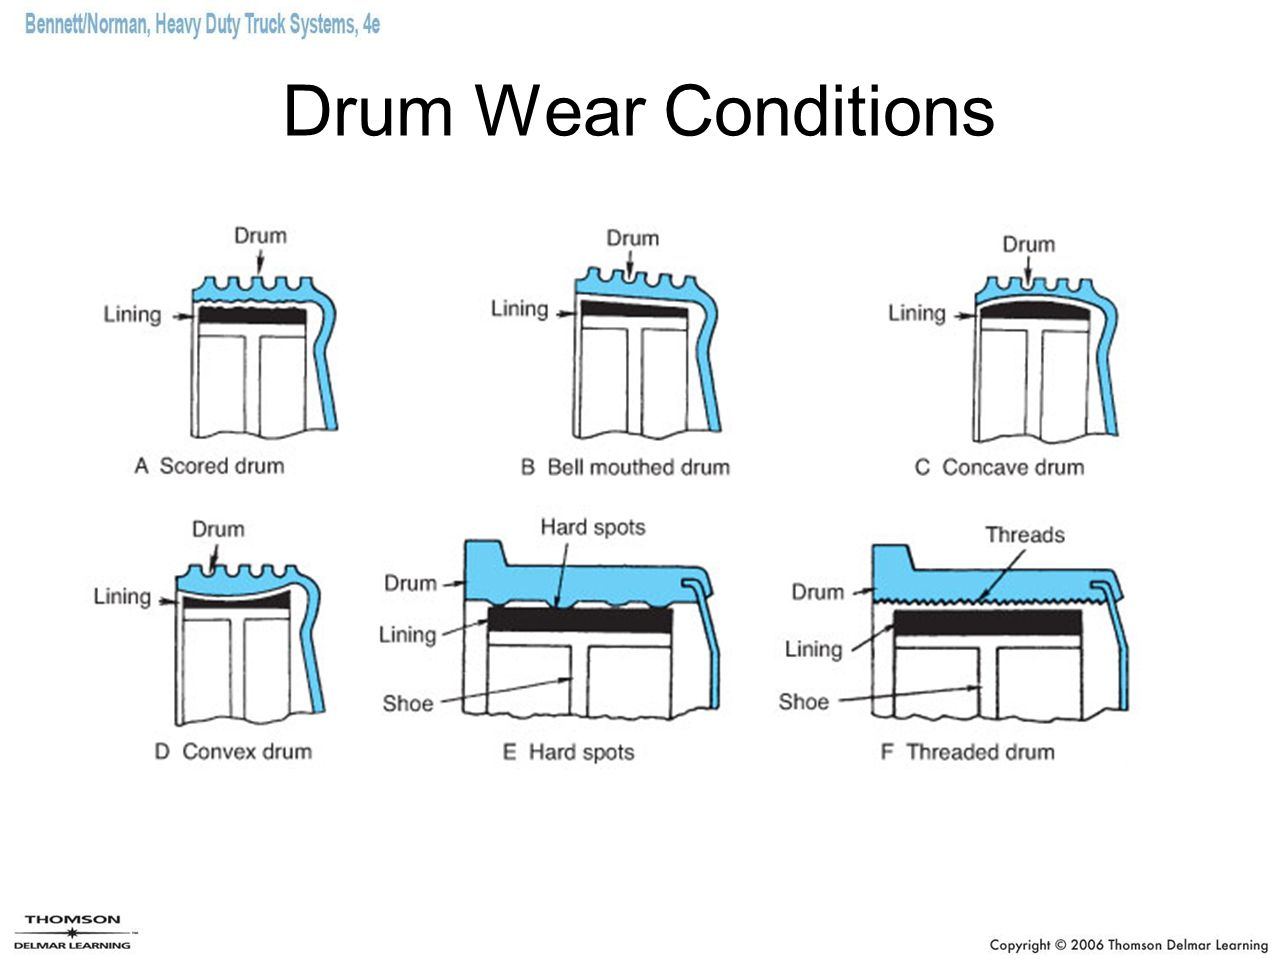 Drum Wear Conditions